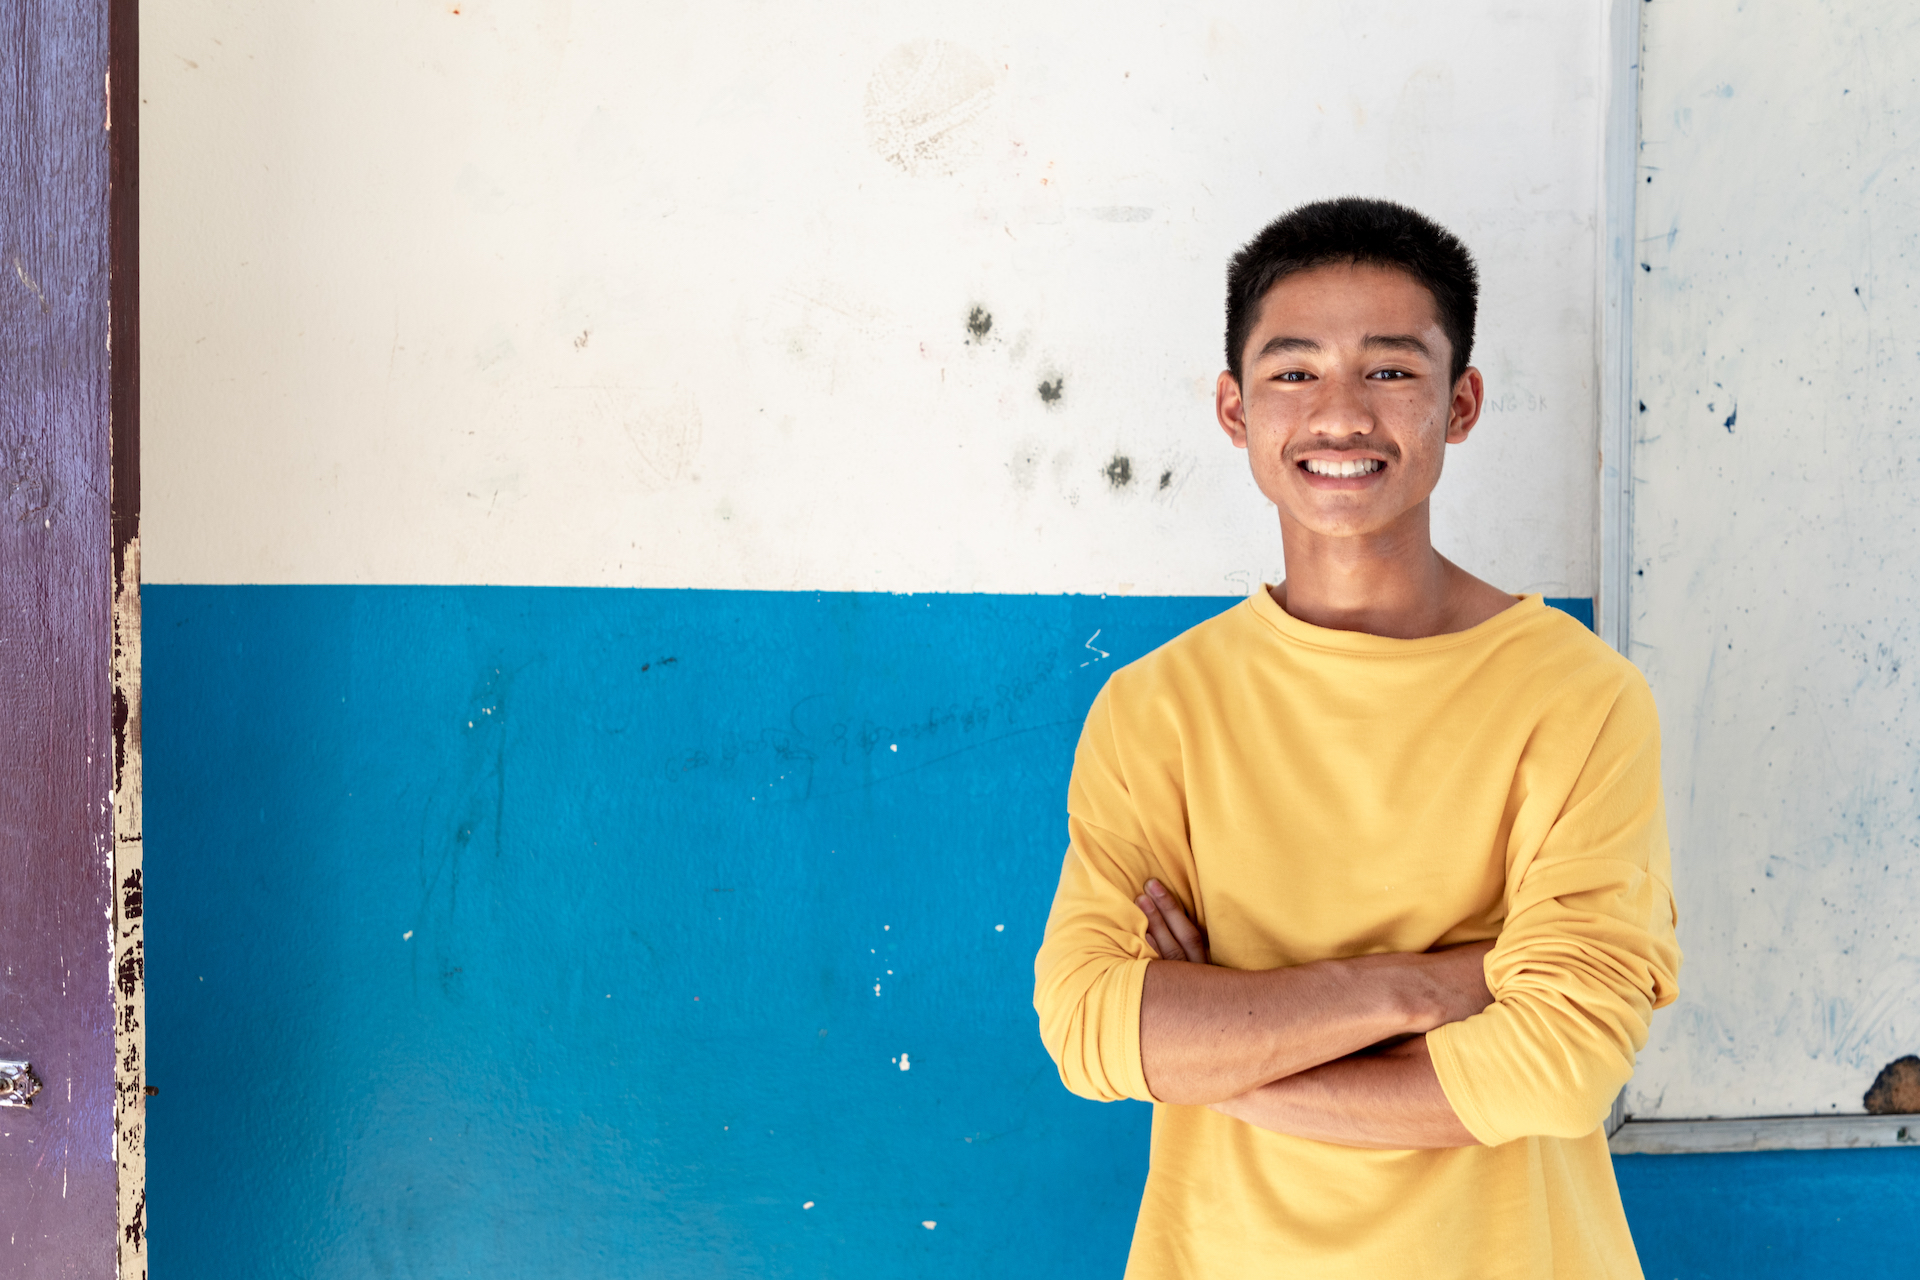 A portrait of 15-year-old Adun. He is looking at the camera, smiling with his arms crossed. He is wearing a mustard yellow crew-neck long sleeve shirt.